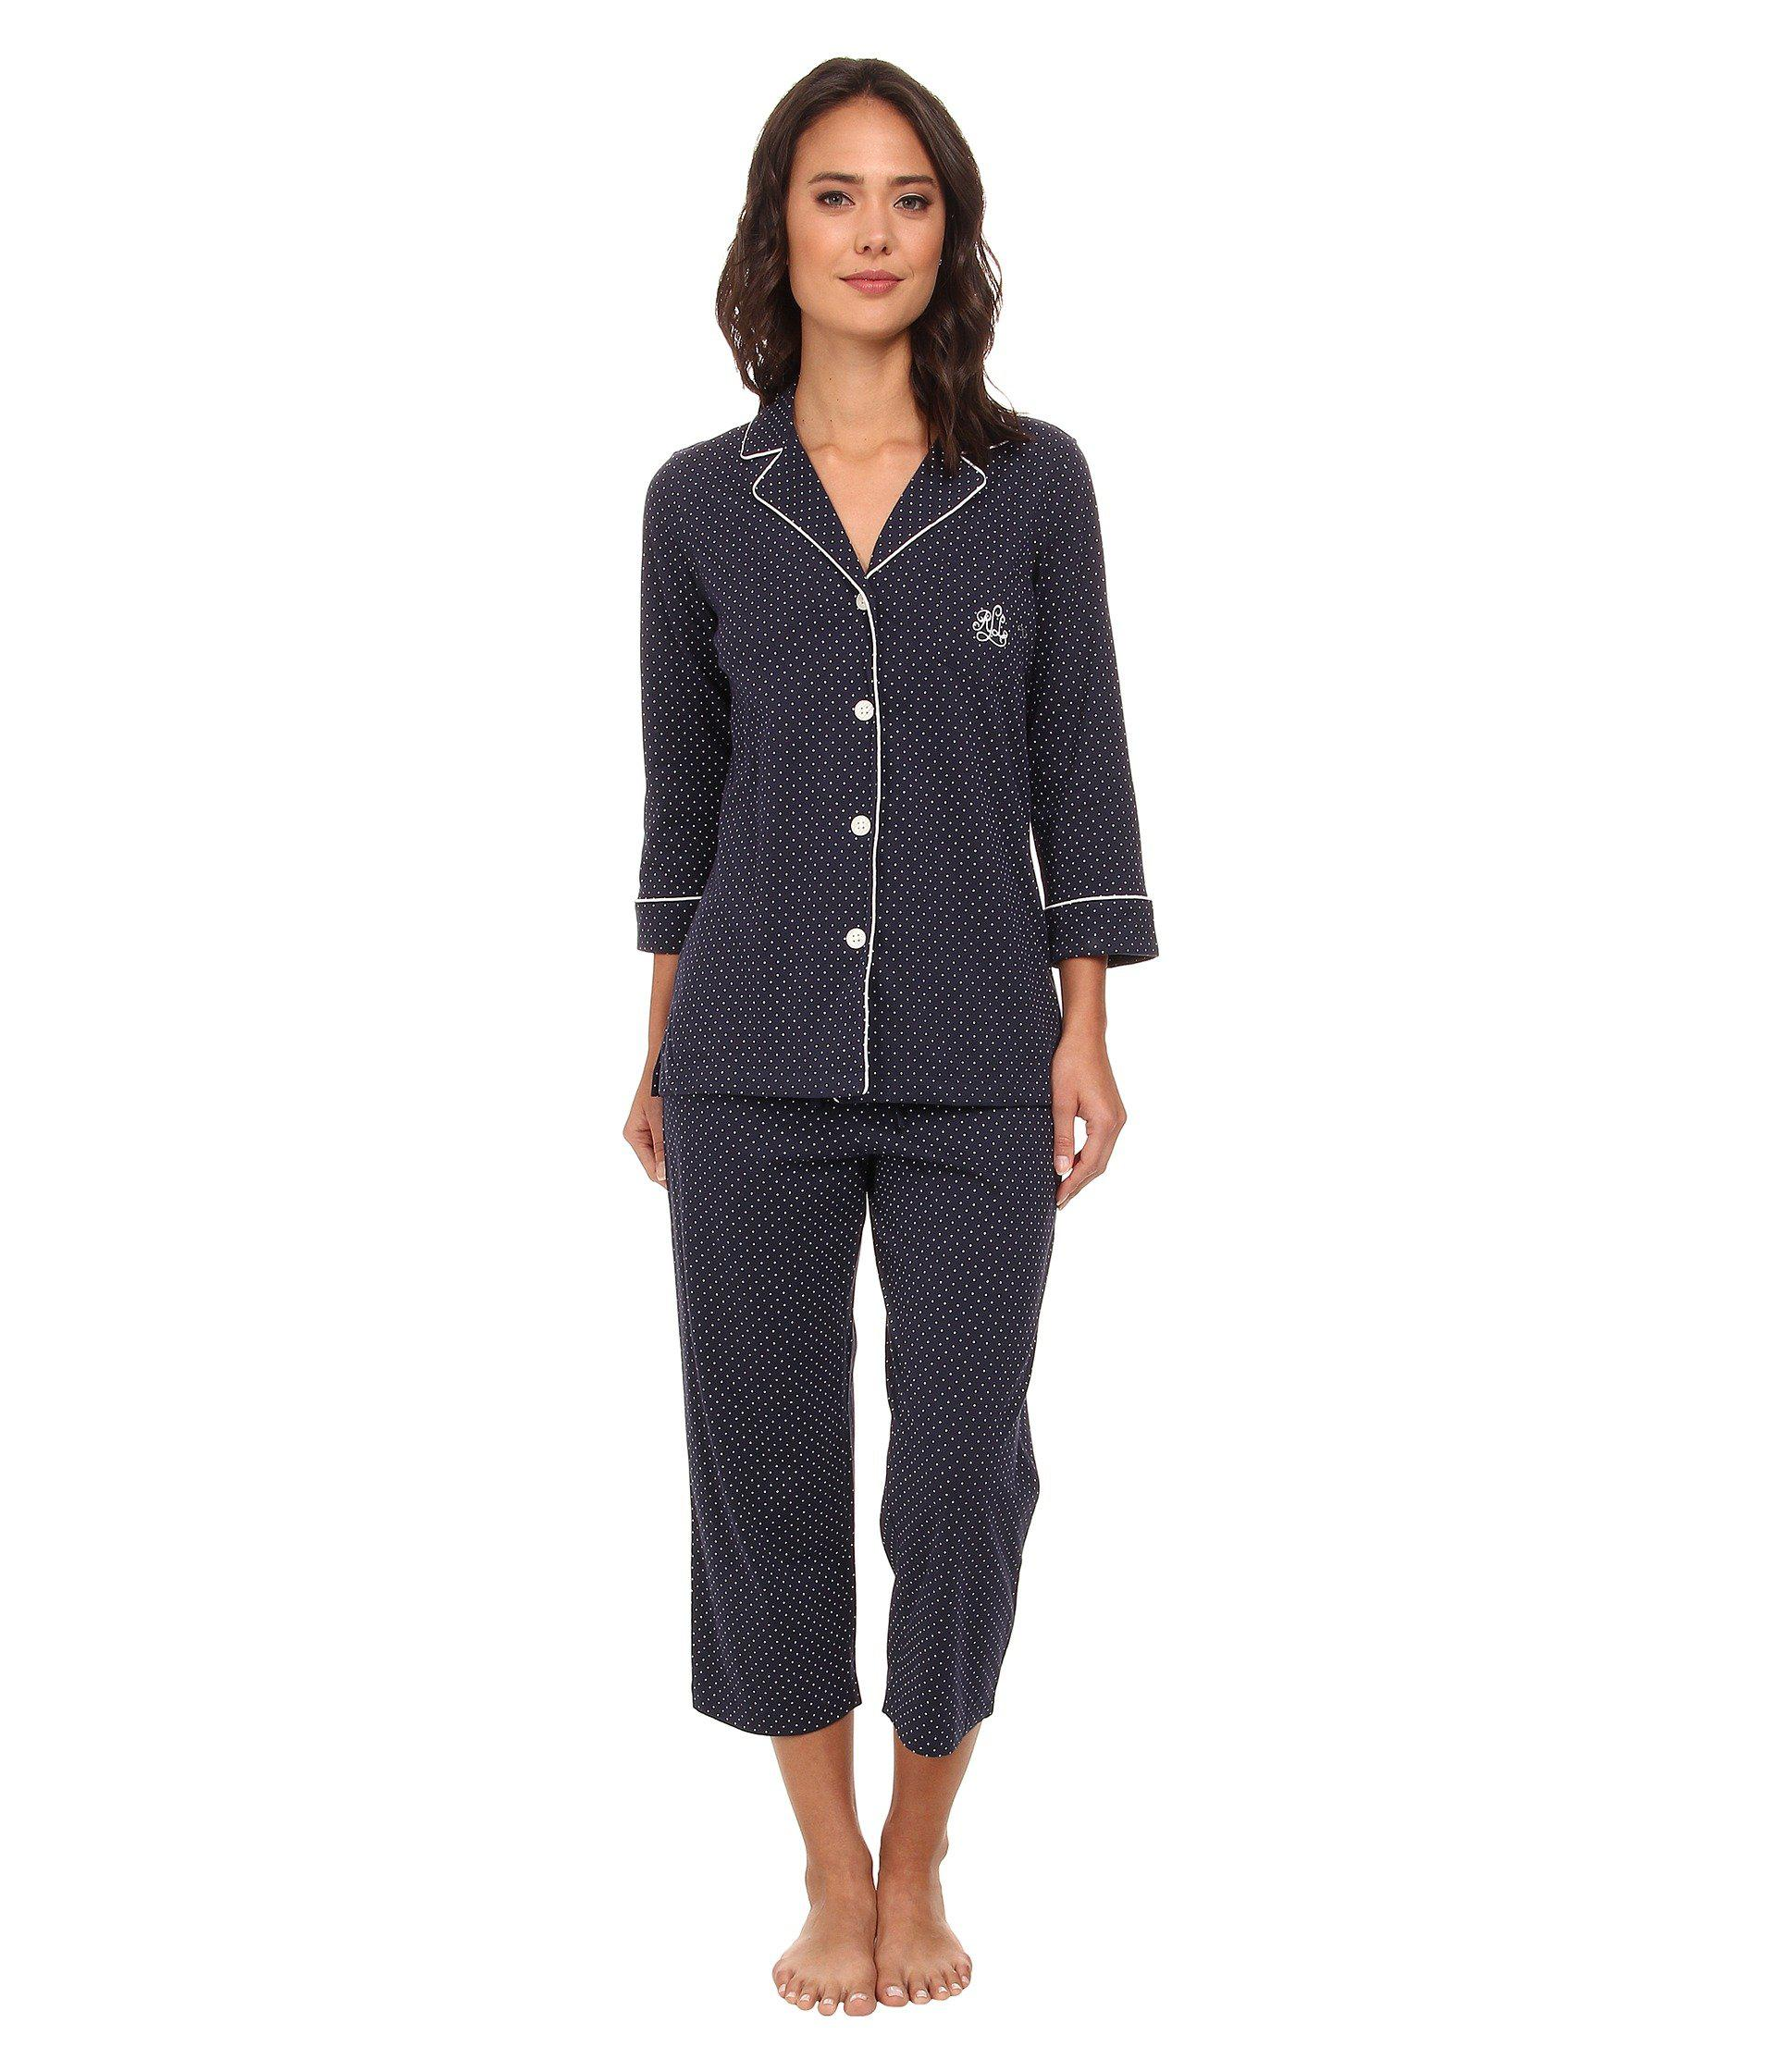 Lyst - Lauren by Ralph Lauren Plus Windsor Pajama Set in Blue 215badf44